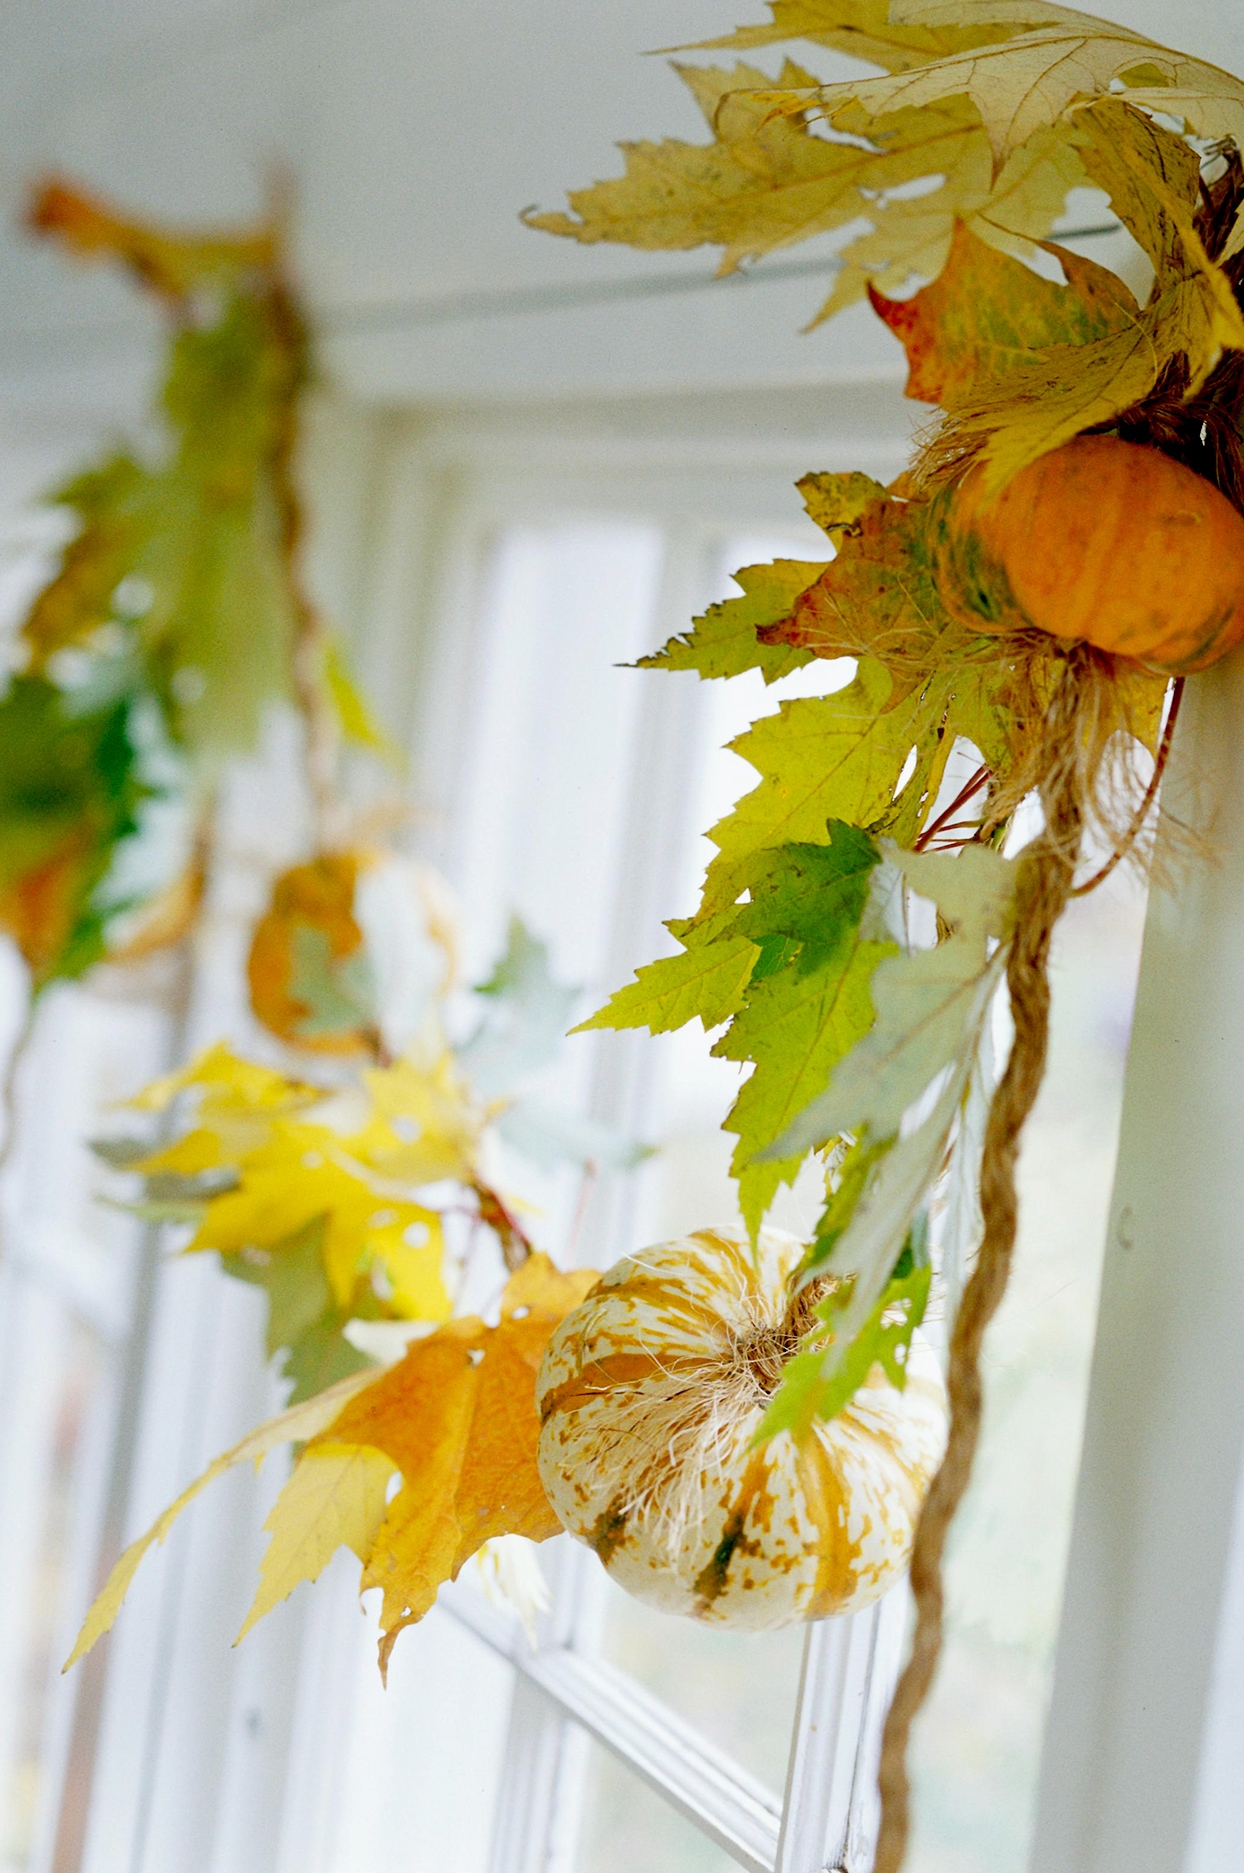 Close up of window fall decorations with leaves and pumpkins